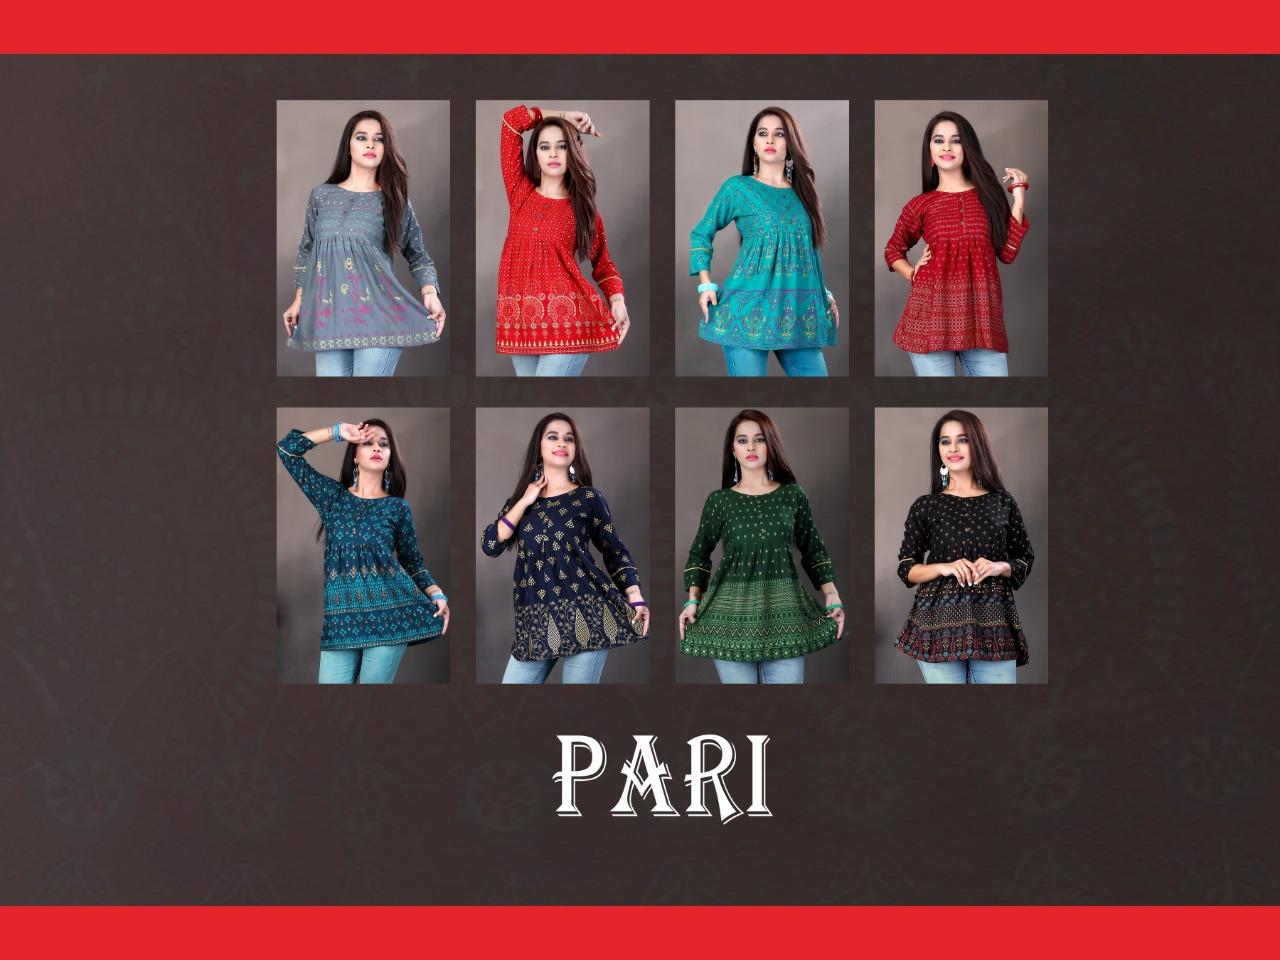 Pari Short Tops Wholesale Catalog 8 Pcs 10 - Pari Short Tops Wholesale Catalog 8 Pcs